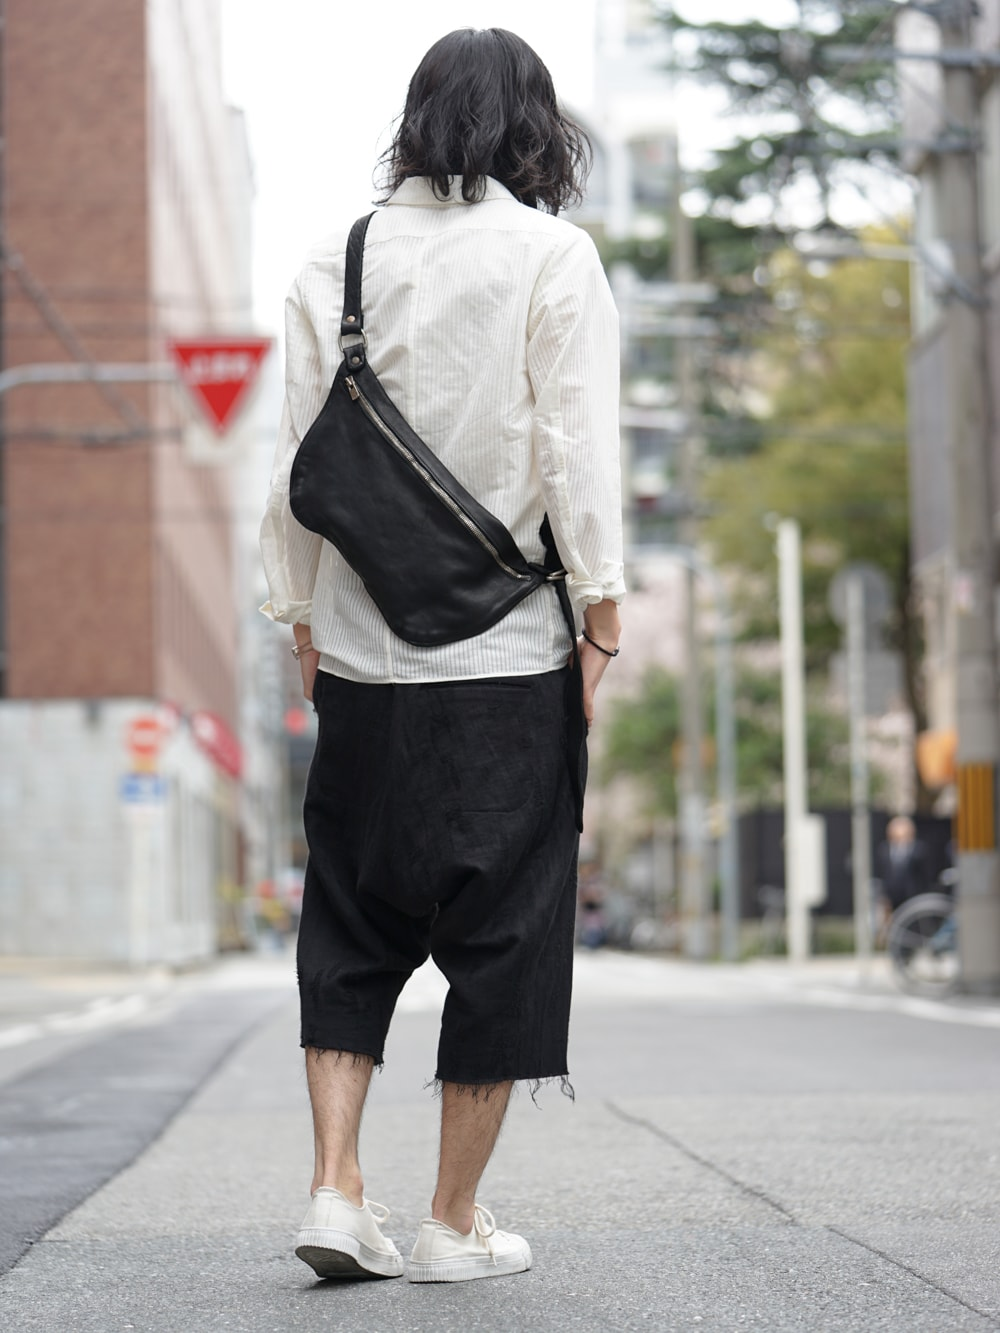 17SS golem Shirt Cardigan × SADDAM TEISSY Hemp x Washi Curved Trousers 02